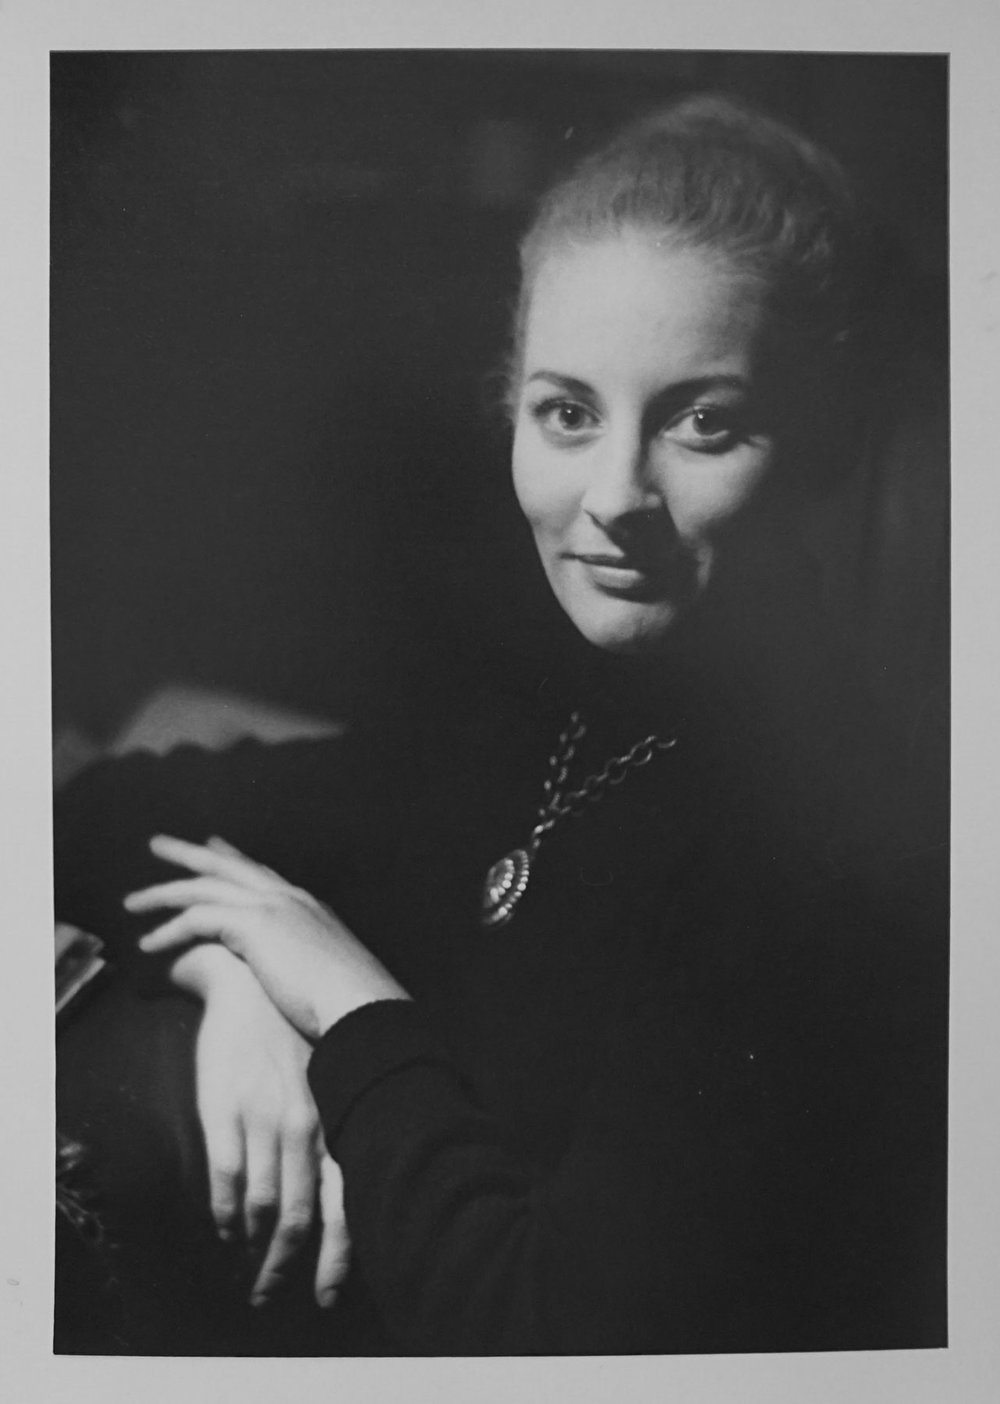 20. Richard Woldendorp, 'Woman, Perth WA', BW35a, taken and printed in 1961, Vintage Print, 1st Prize 1961 Craven 'A' National Portrait Competition